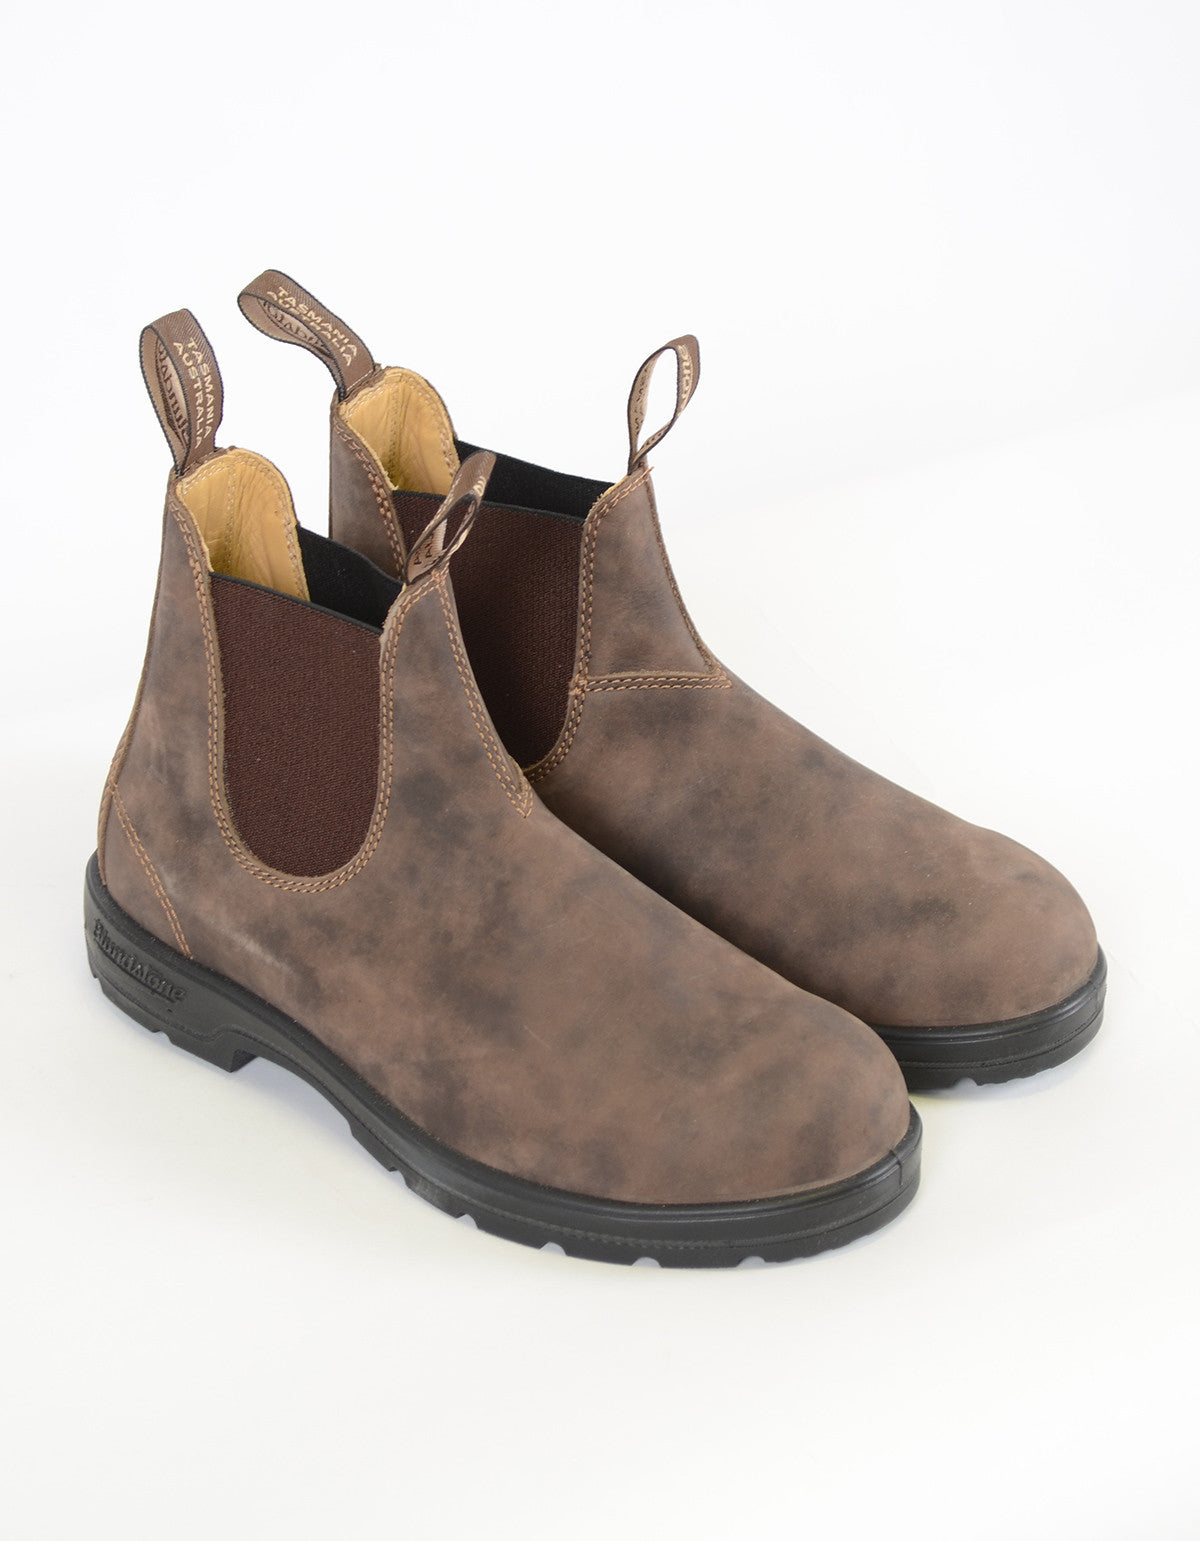 Blundstone Women's 585 Round Toe Boots Rustic Brown - Still Life - 3